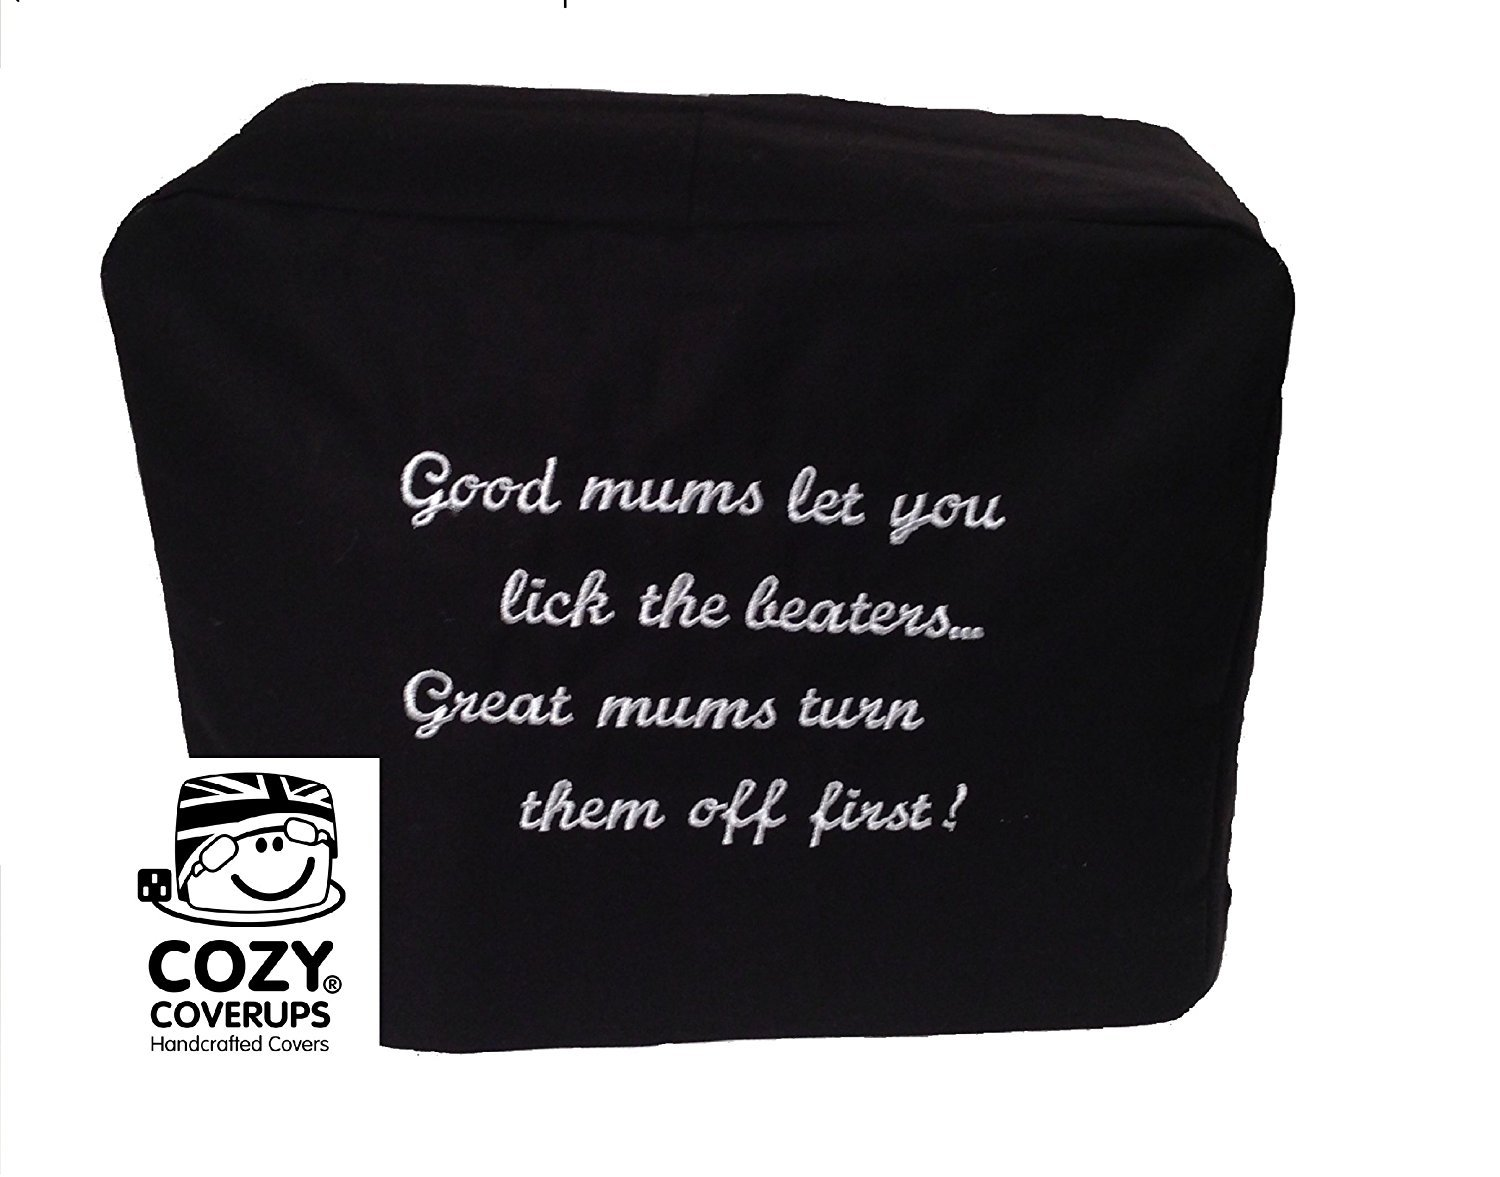 Kitchenaid Artisan CozyCoverUp® Black Embroidered Food Mixer Cover 100% Cotton CoolCozy Covers